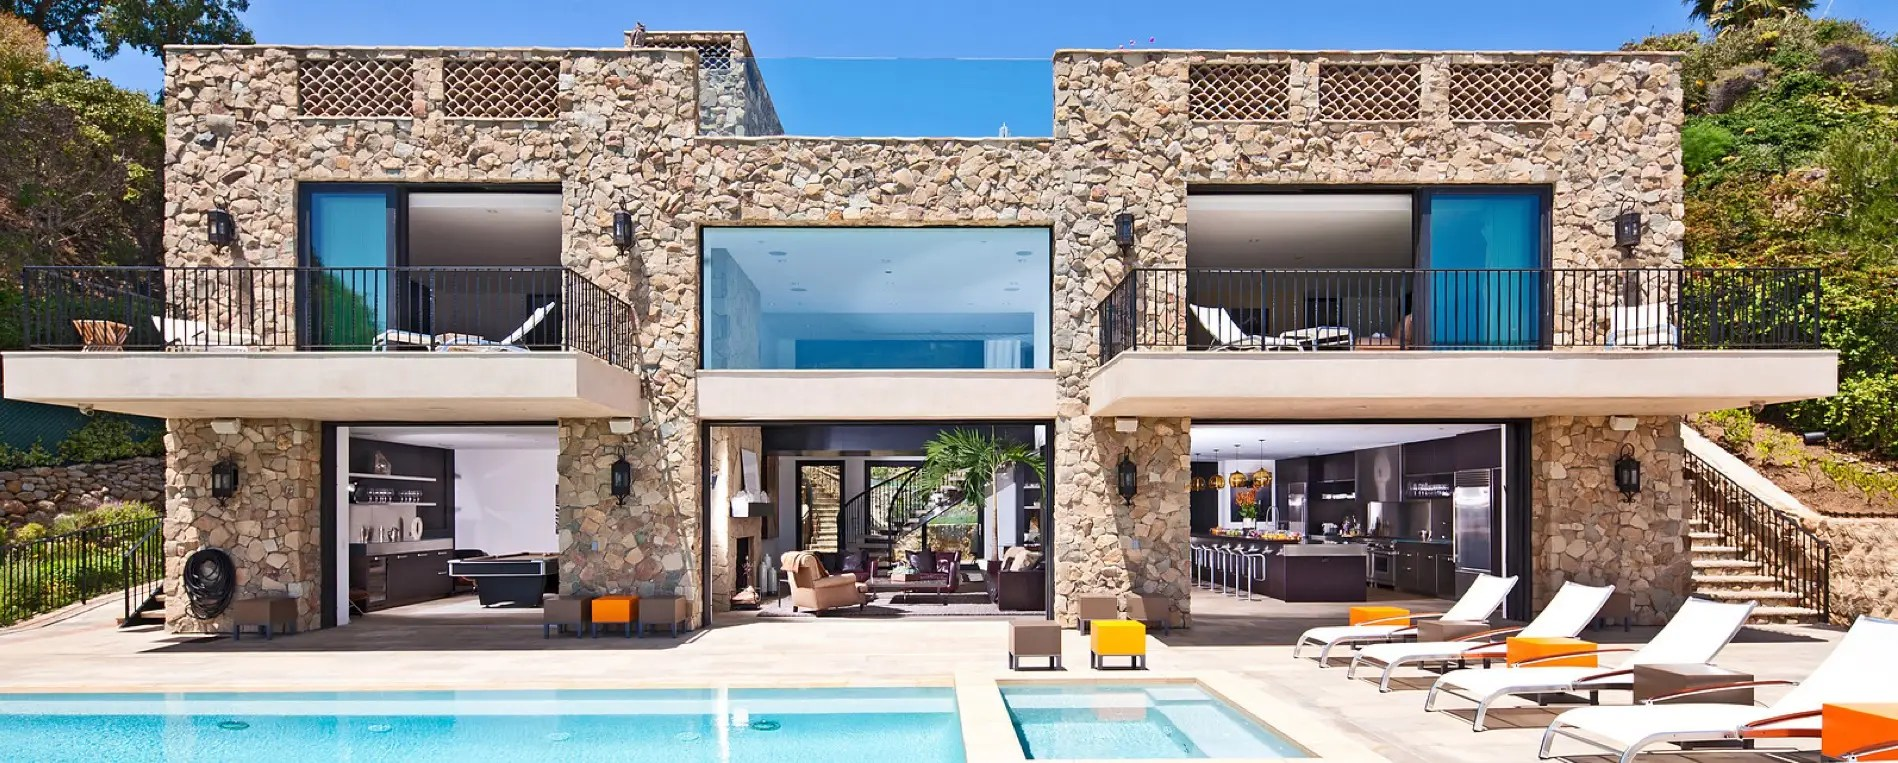 The glass walls allow you to see straight through the house.